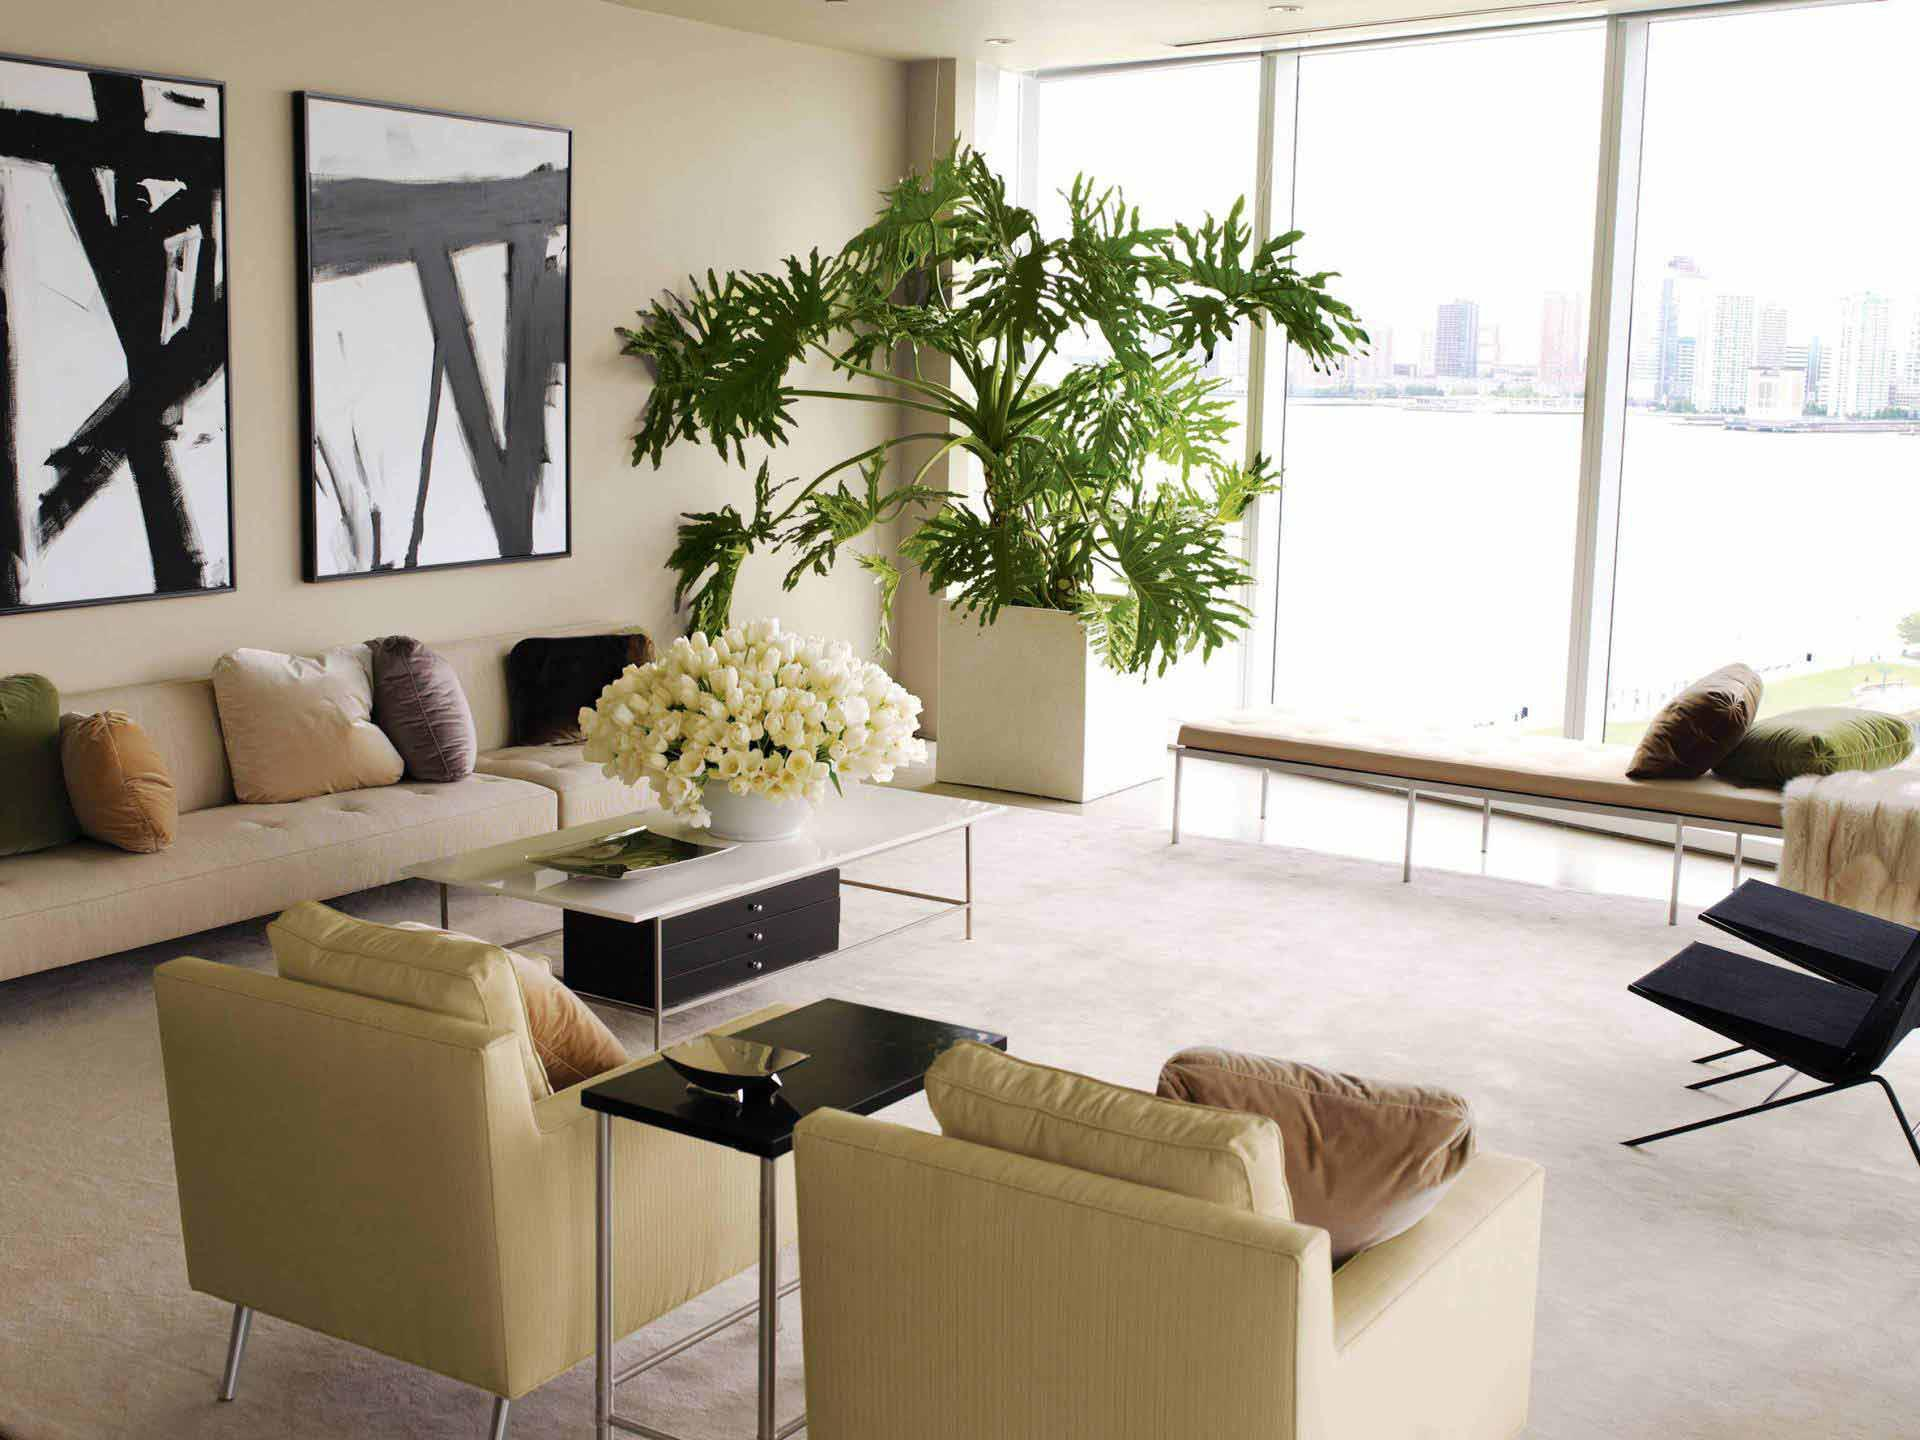 Cool Plants For Your Room Decorating Our Homes With Plants Interior Design Explained